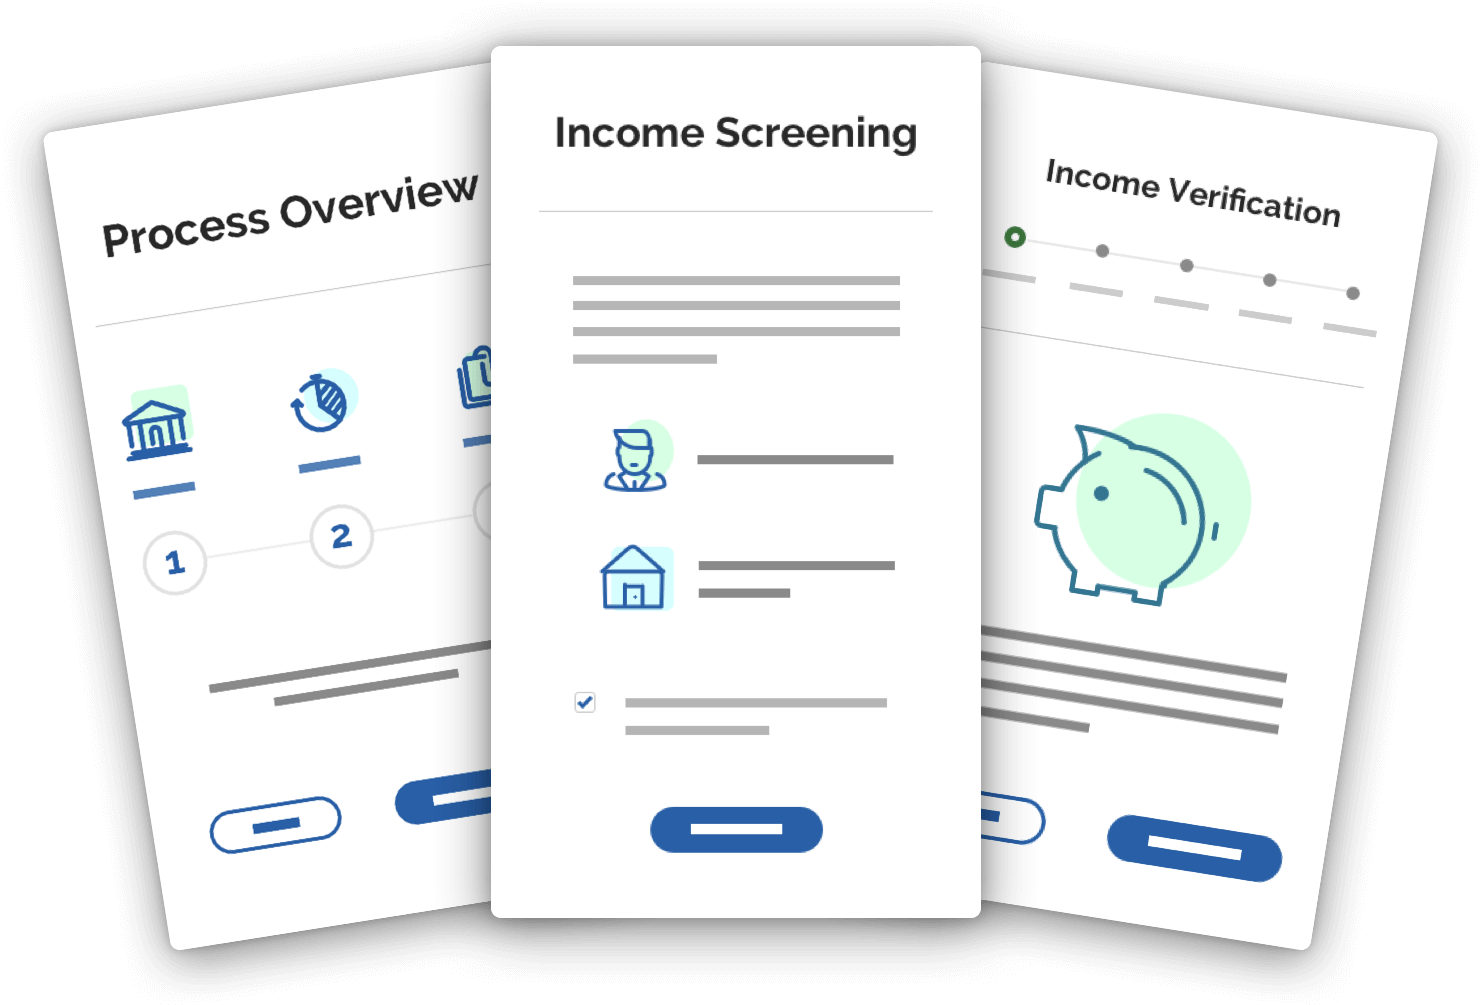 get started on our income verification in 5 minutes